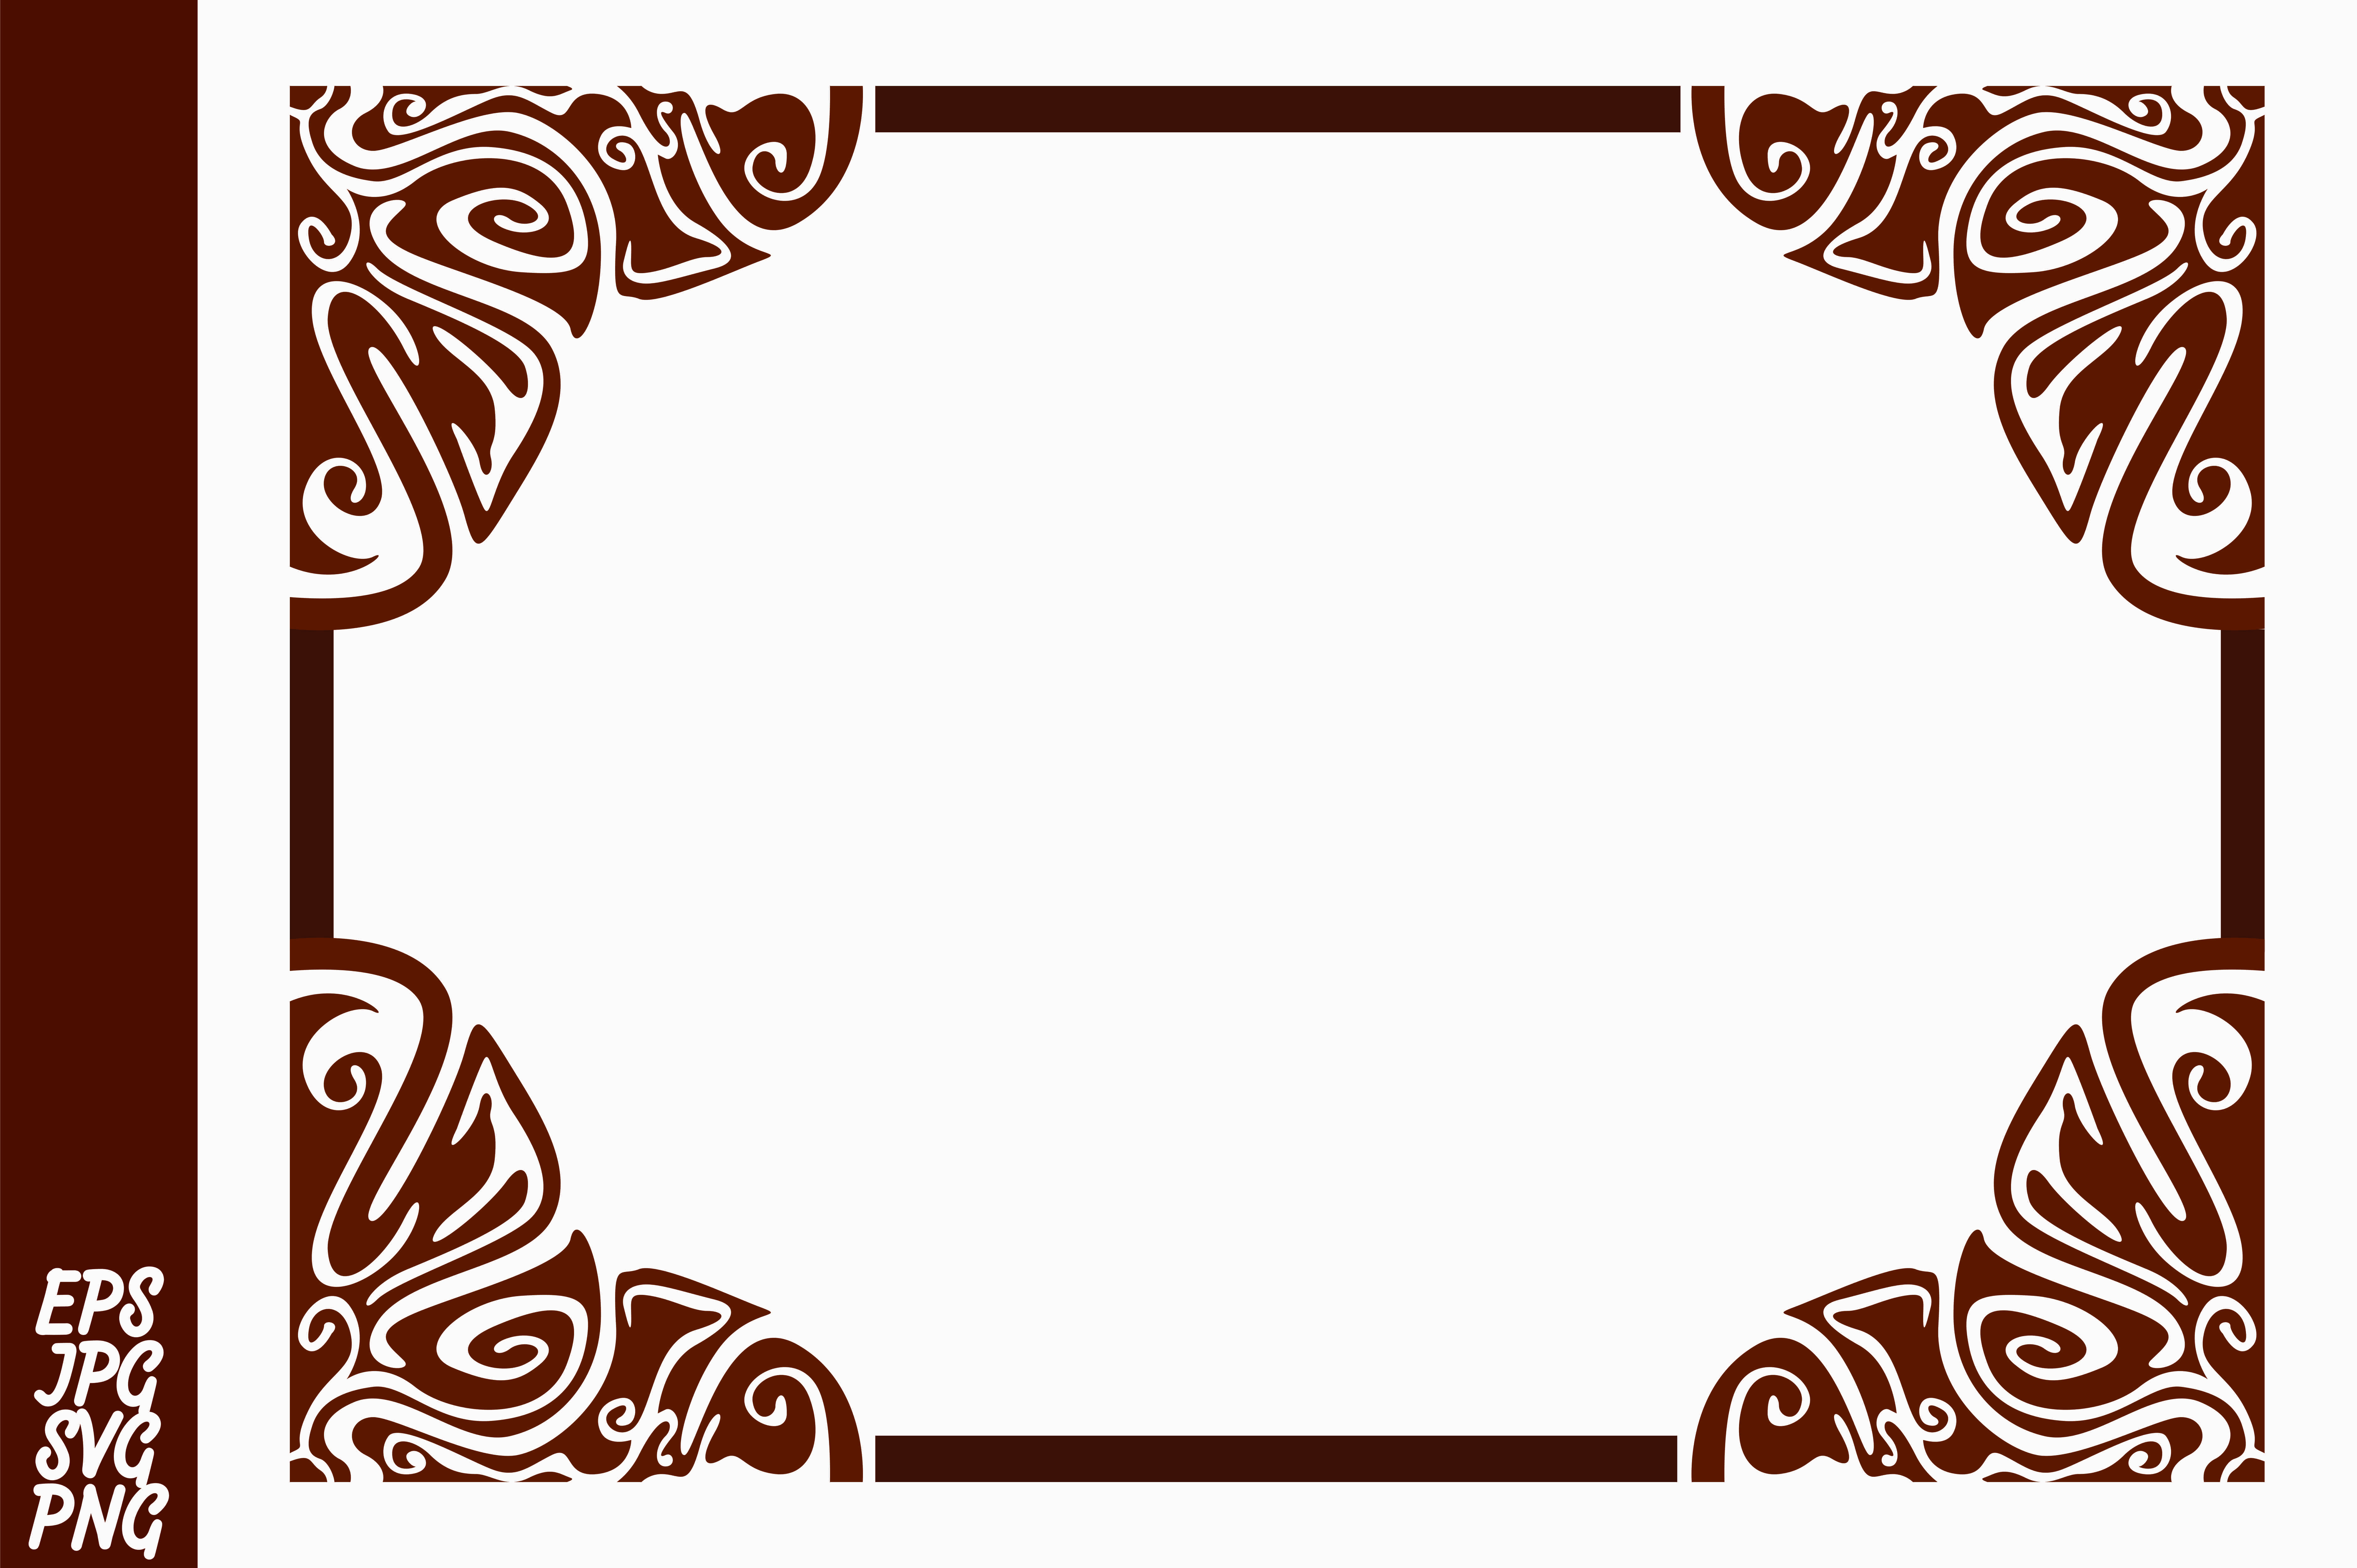 Download Free Brown Ornament Border Decorative Graphic By Arief Sapta Adjie for Cricut Explore, Silhouette and other cutting machines.